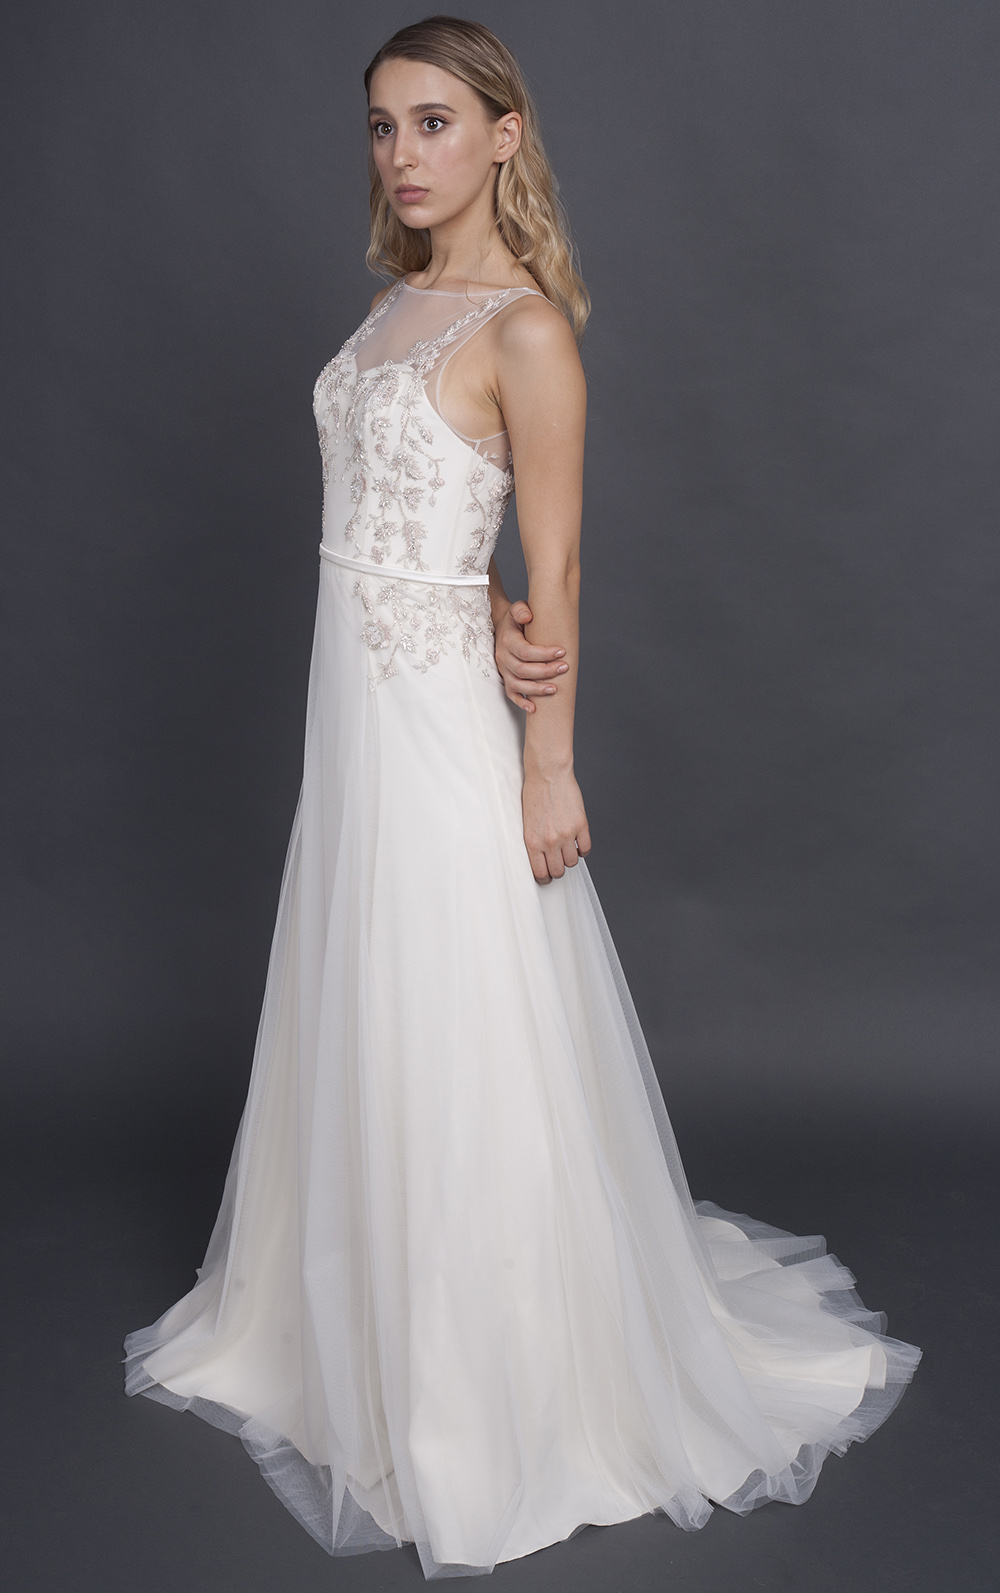 marina-semone-trunk-show-wild-rose-collection-ivory-and-beau-bridal-boutique-savannah-bridal-shop-trunk-show-bridal-wedding-gown-modern-wedding-gown-romantic-floral-detail-savannah-bridal-boutique-wedding-gowns-savannah-georgia-3.jpg